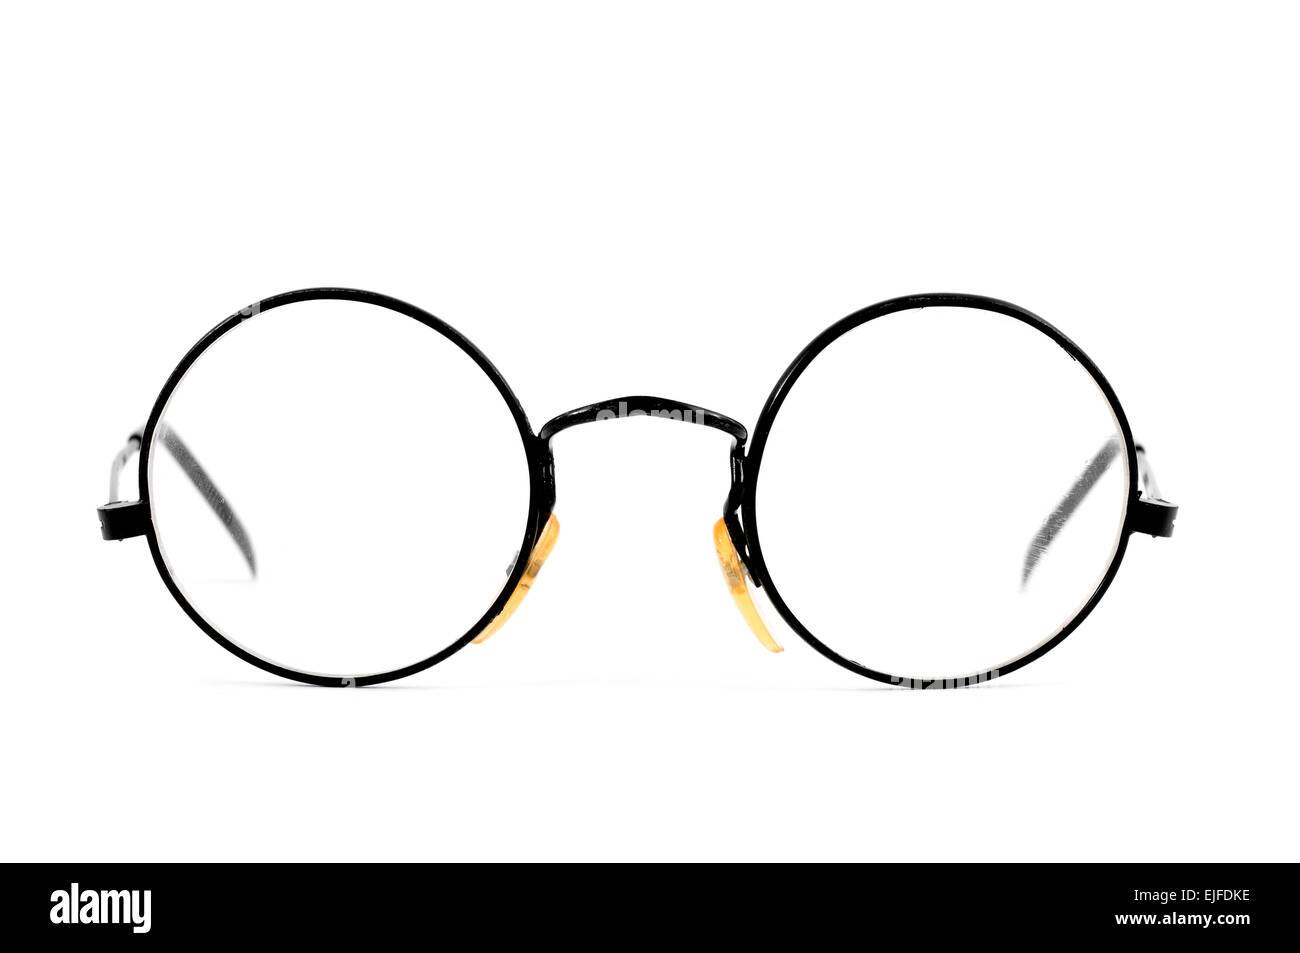 a pair of round-lens eyeglasses on a white background - Stock Image